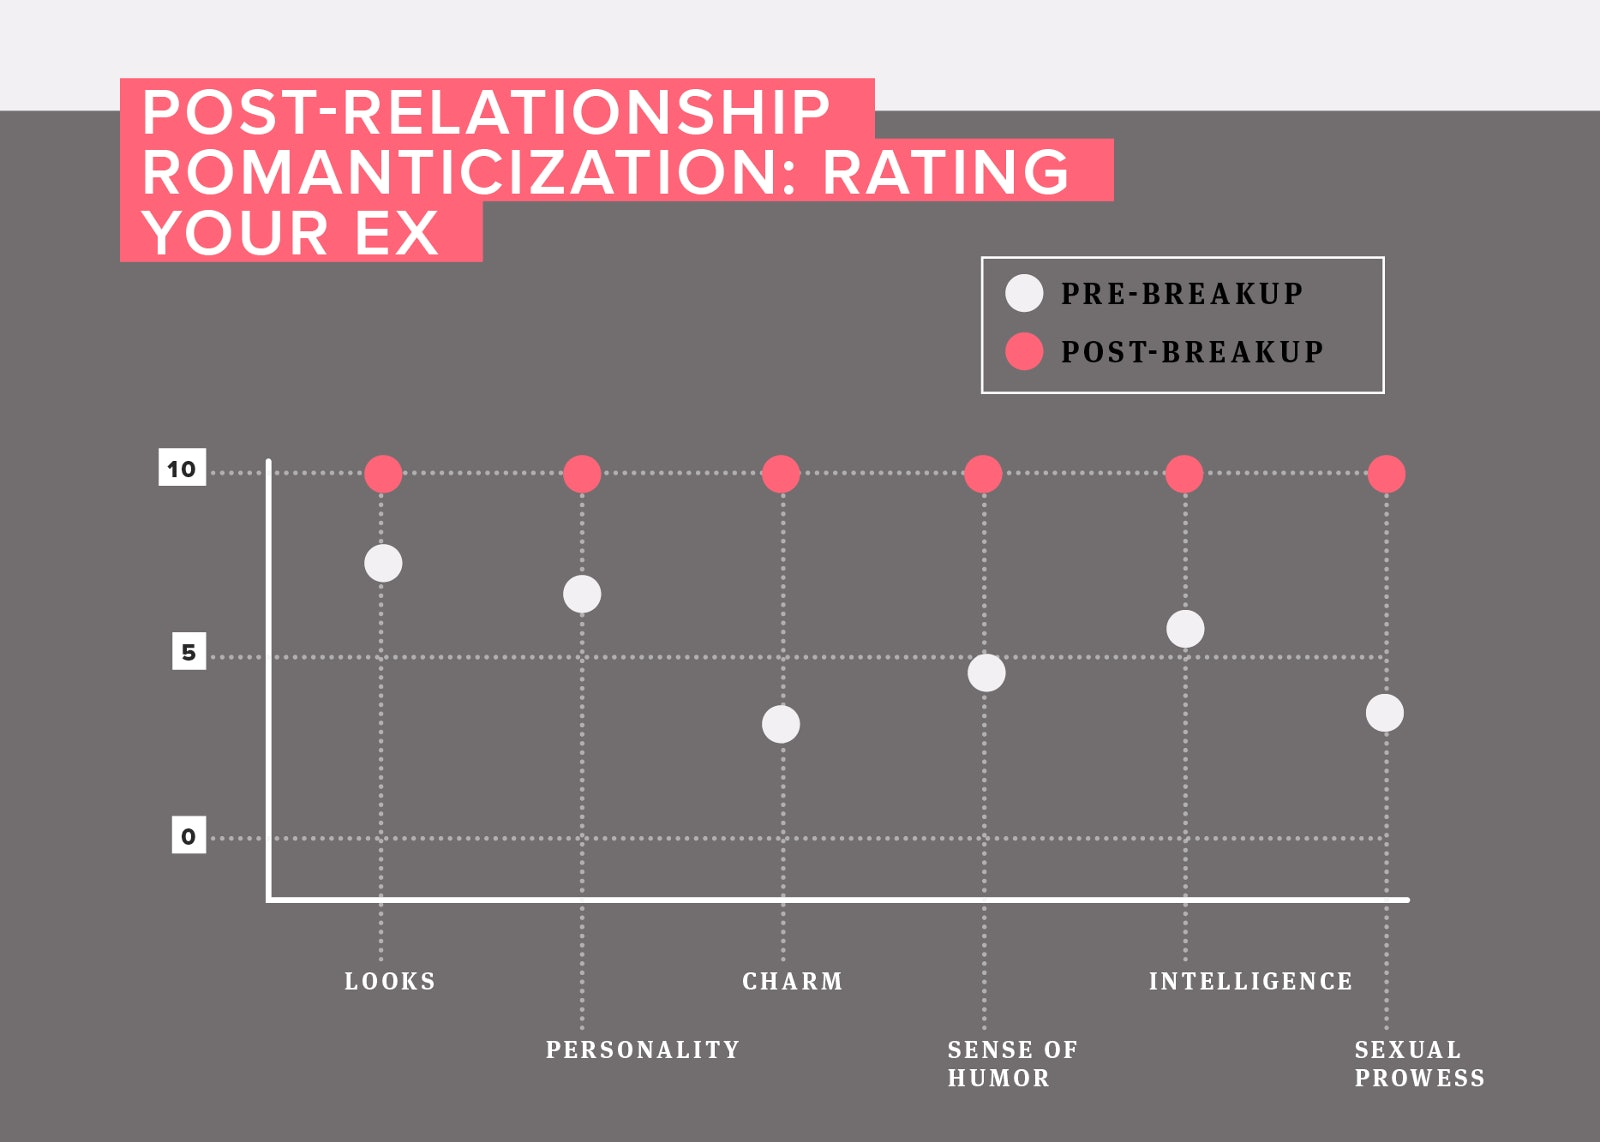 8 Stages Of A Breakup From Romanticizing Your Ex To Moving On In Chart Form